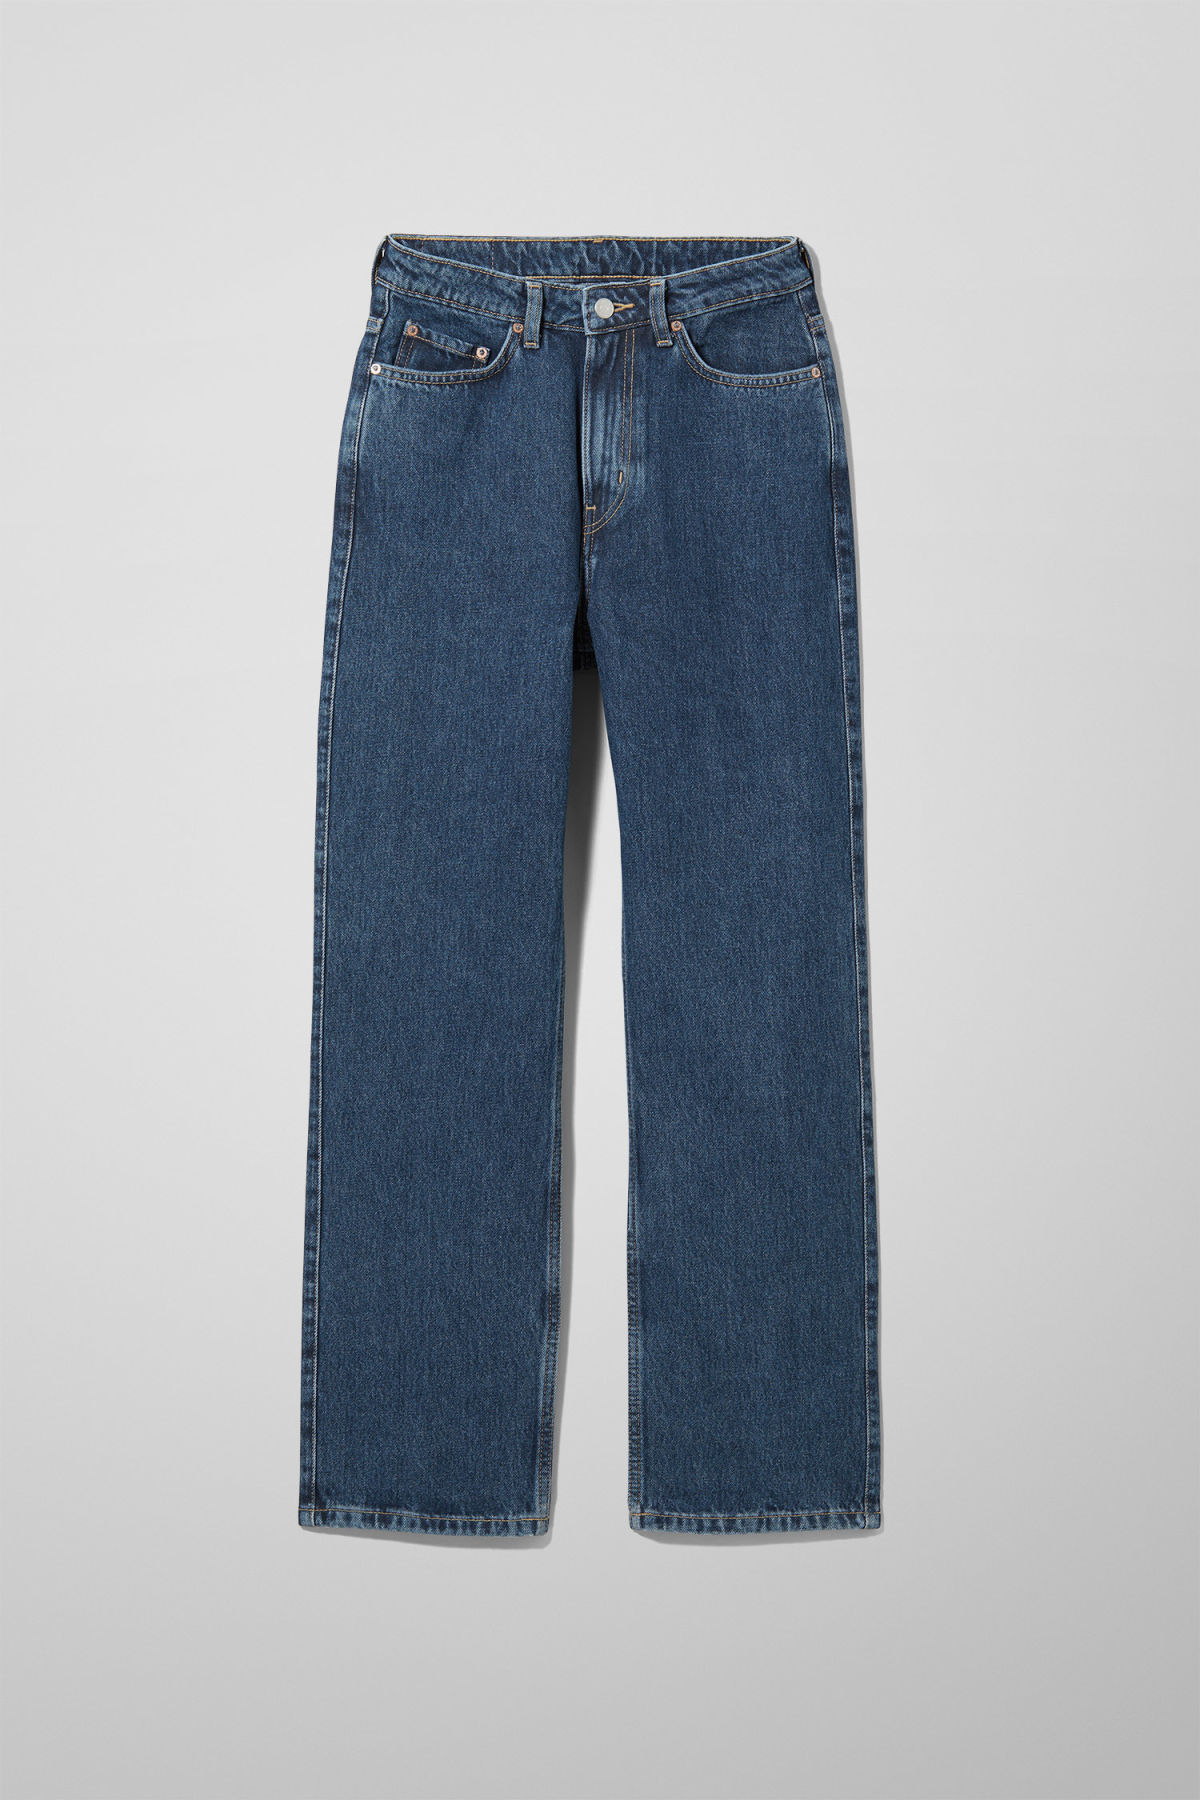 3a7b6a9466 Row Win Jeans - Blue - Jeans - Weekday